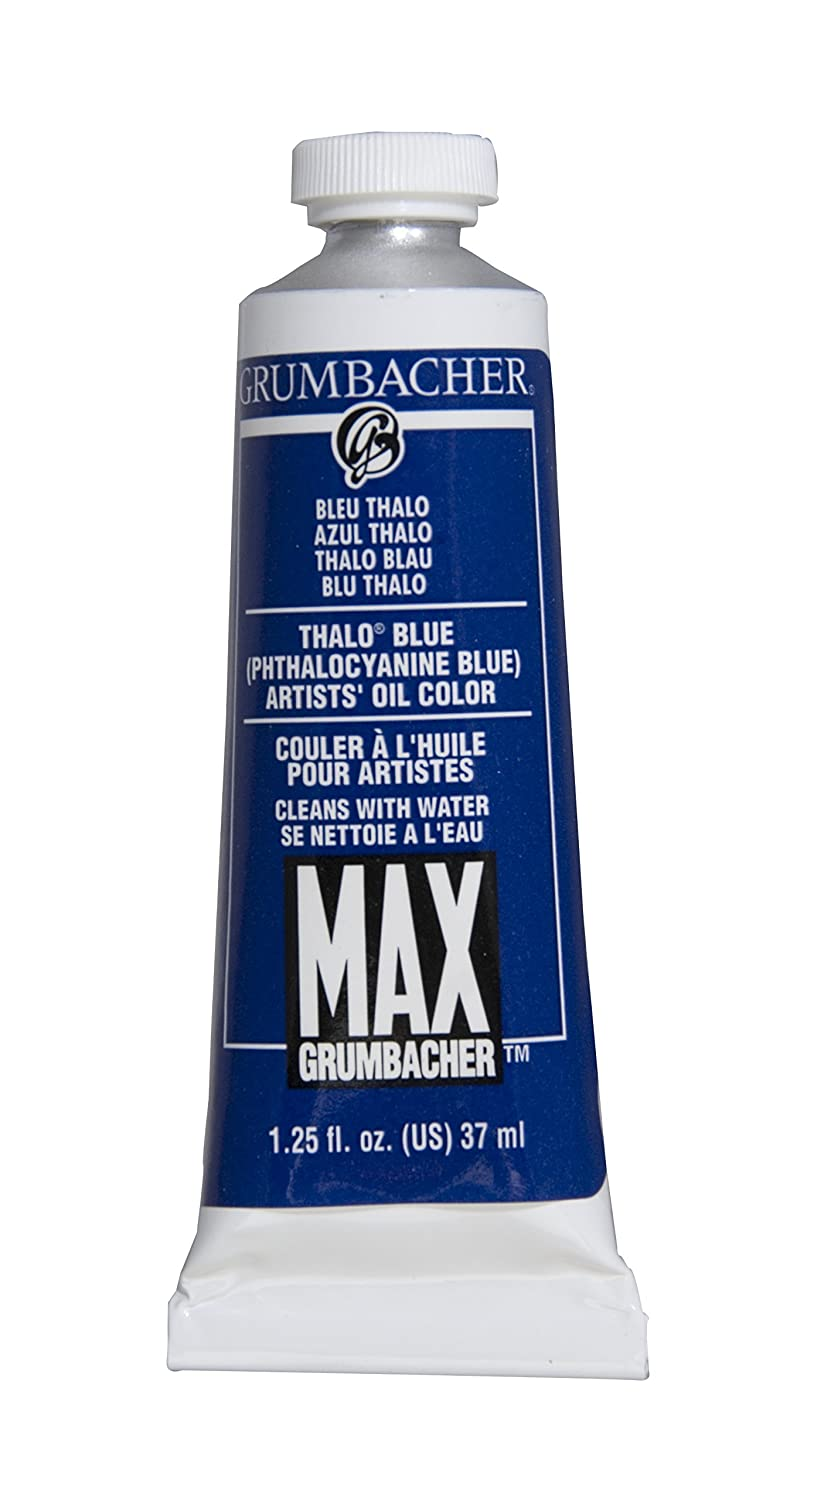 Grumbacher Max Water Miscible Oil Paint, 37ml/1.25 oz, Thalo Blue M203